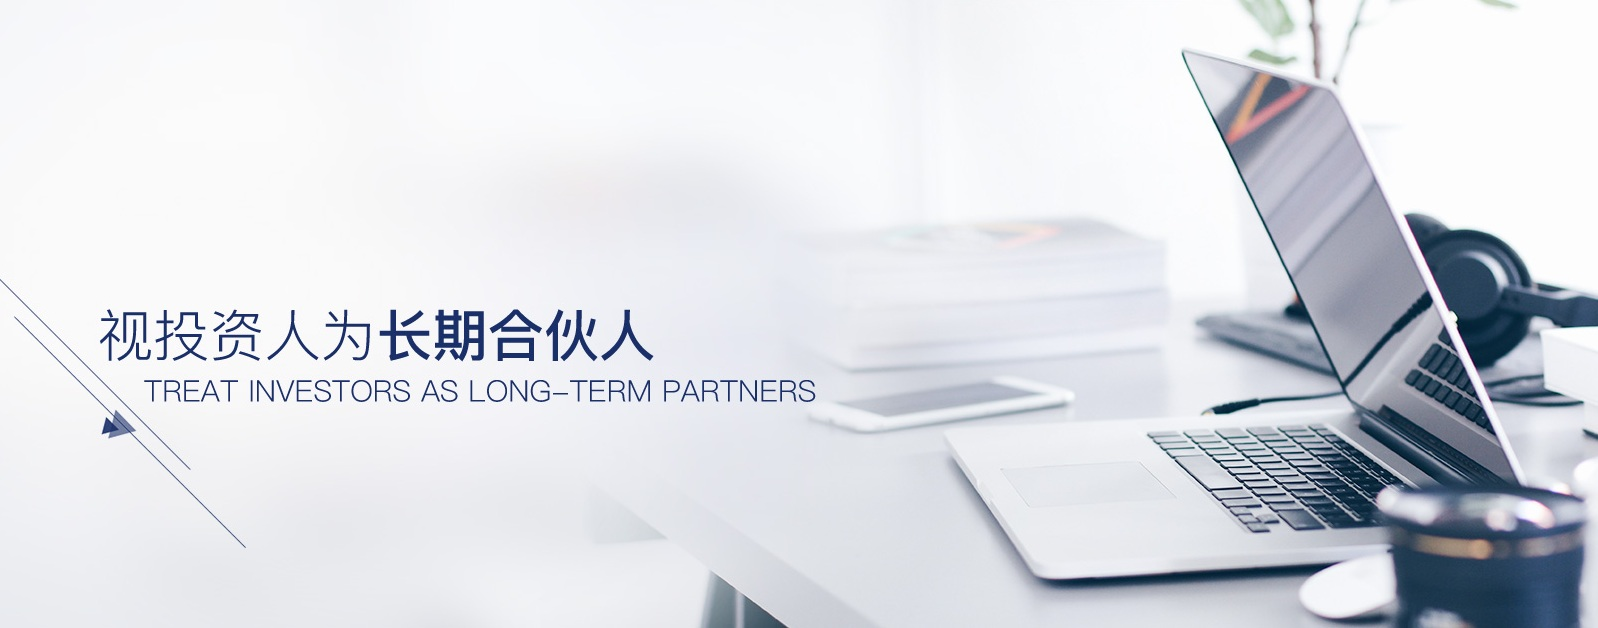 Yansuan BM(Yansuan business management Co., Ltd.) treat investors as long-term partners